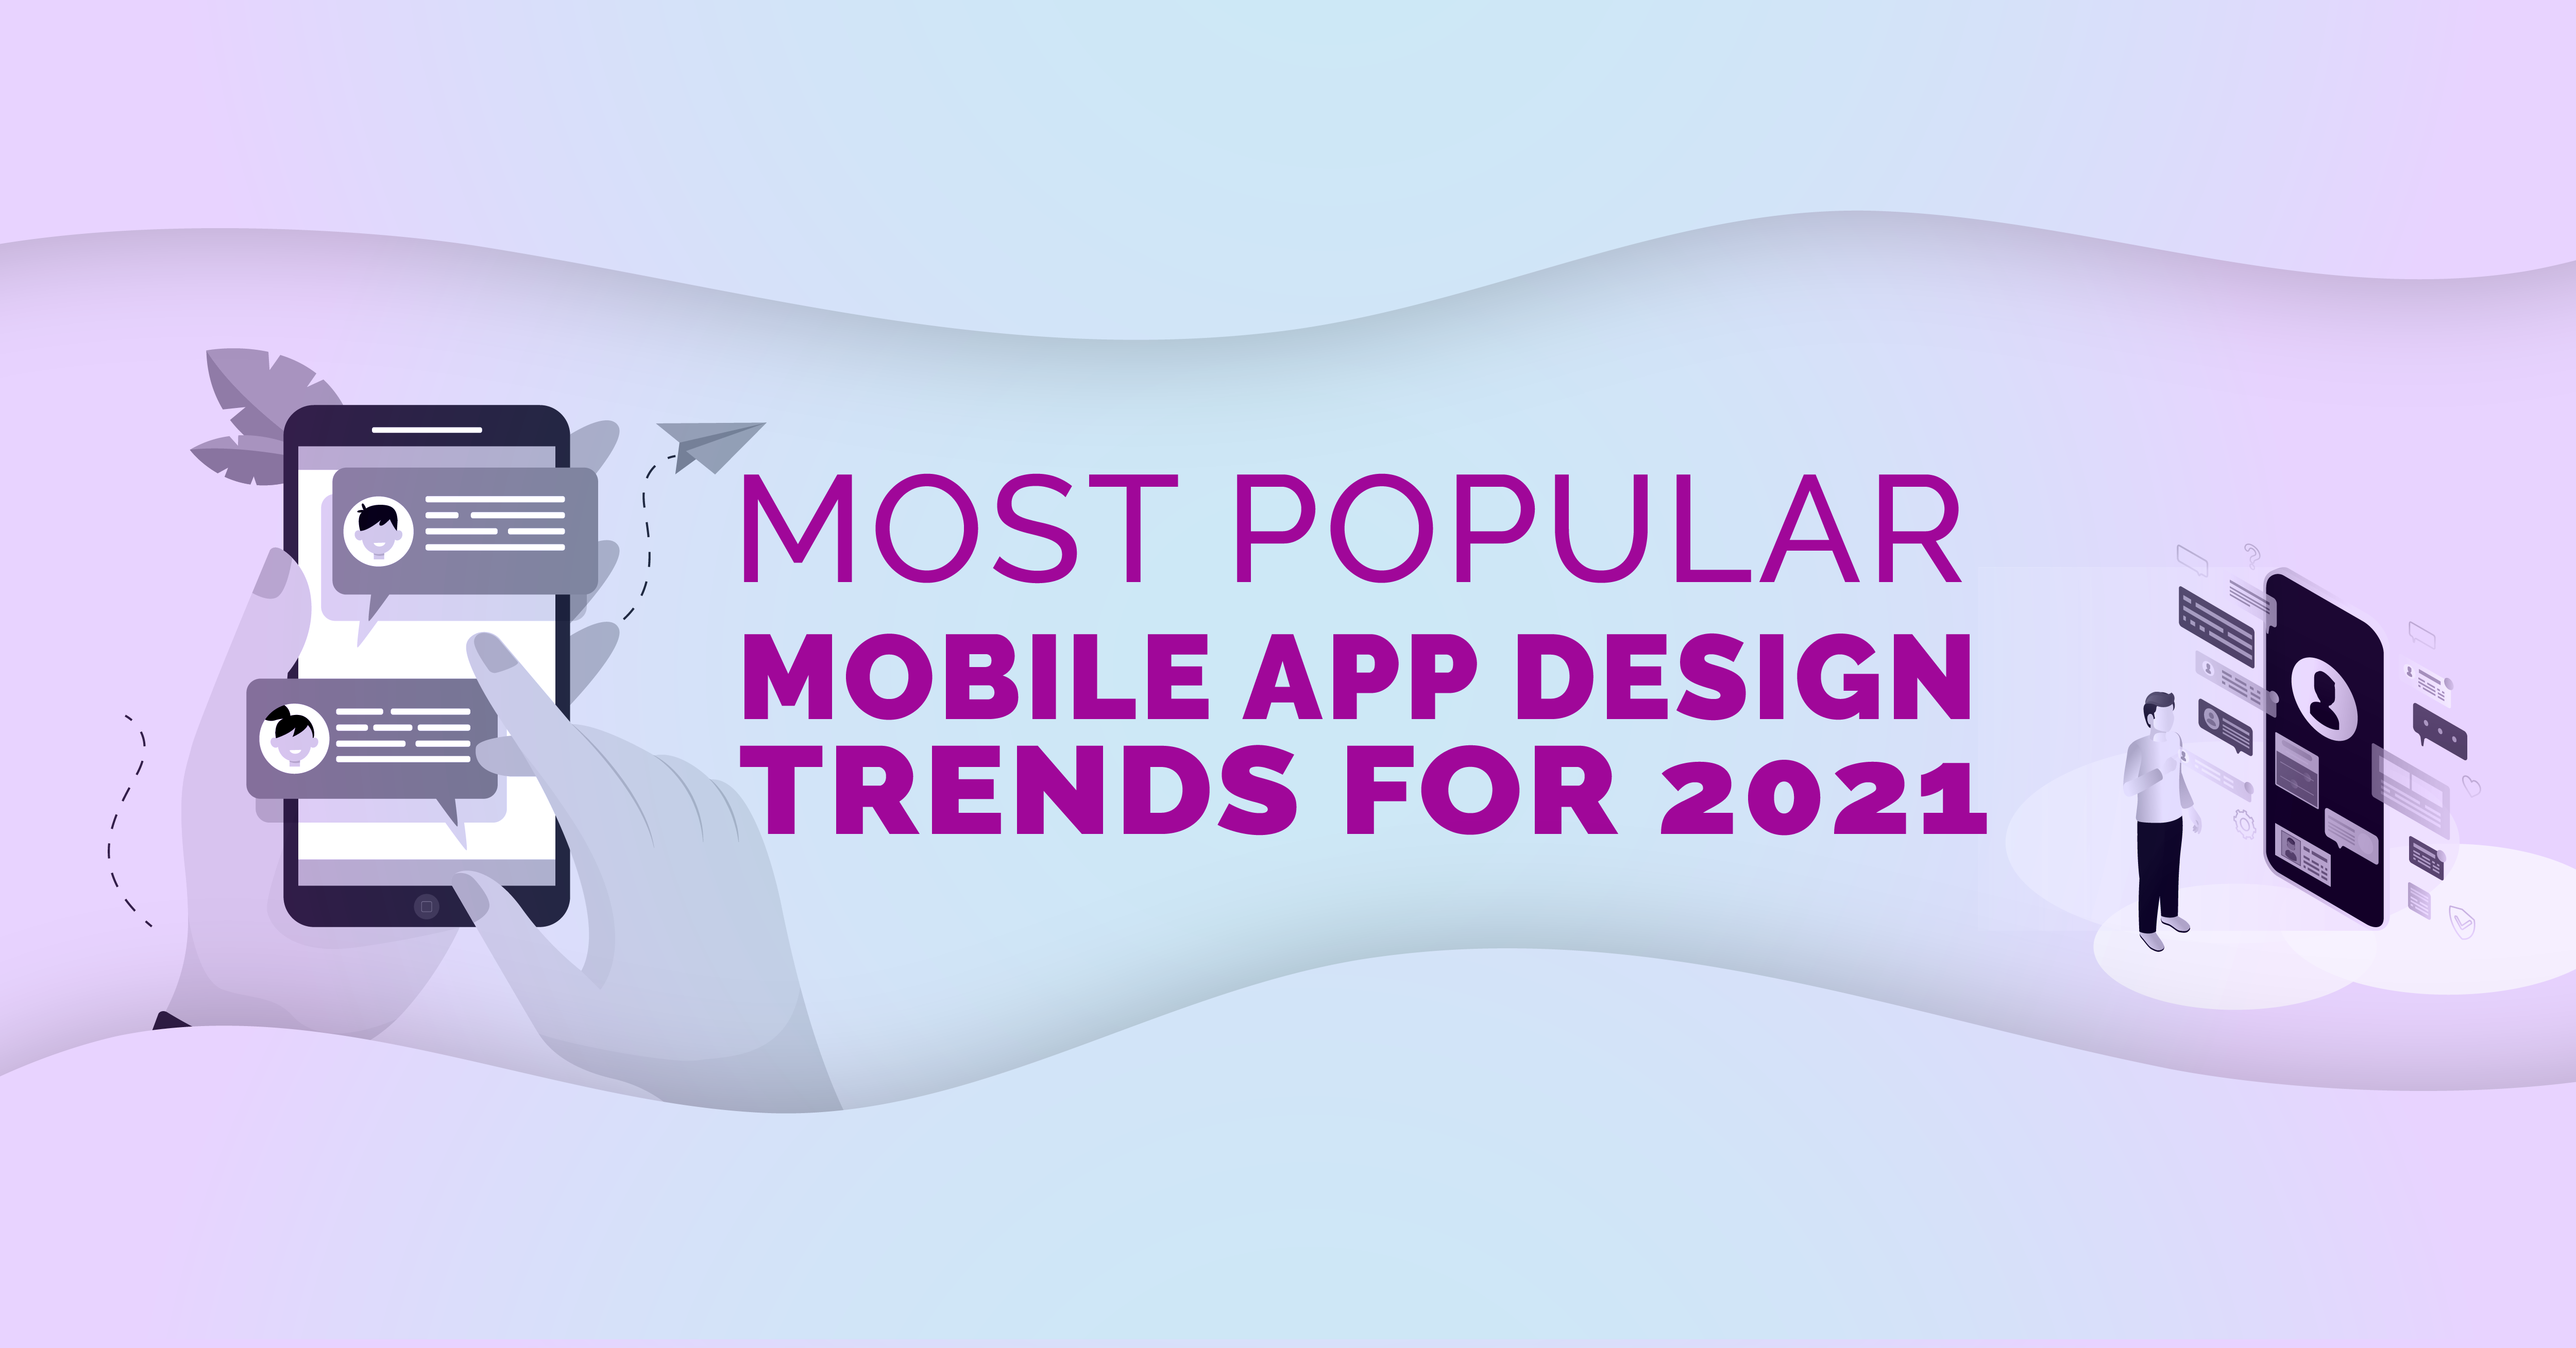 Most Popular Mobile App Design Trends for 2021